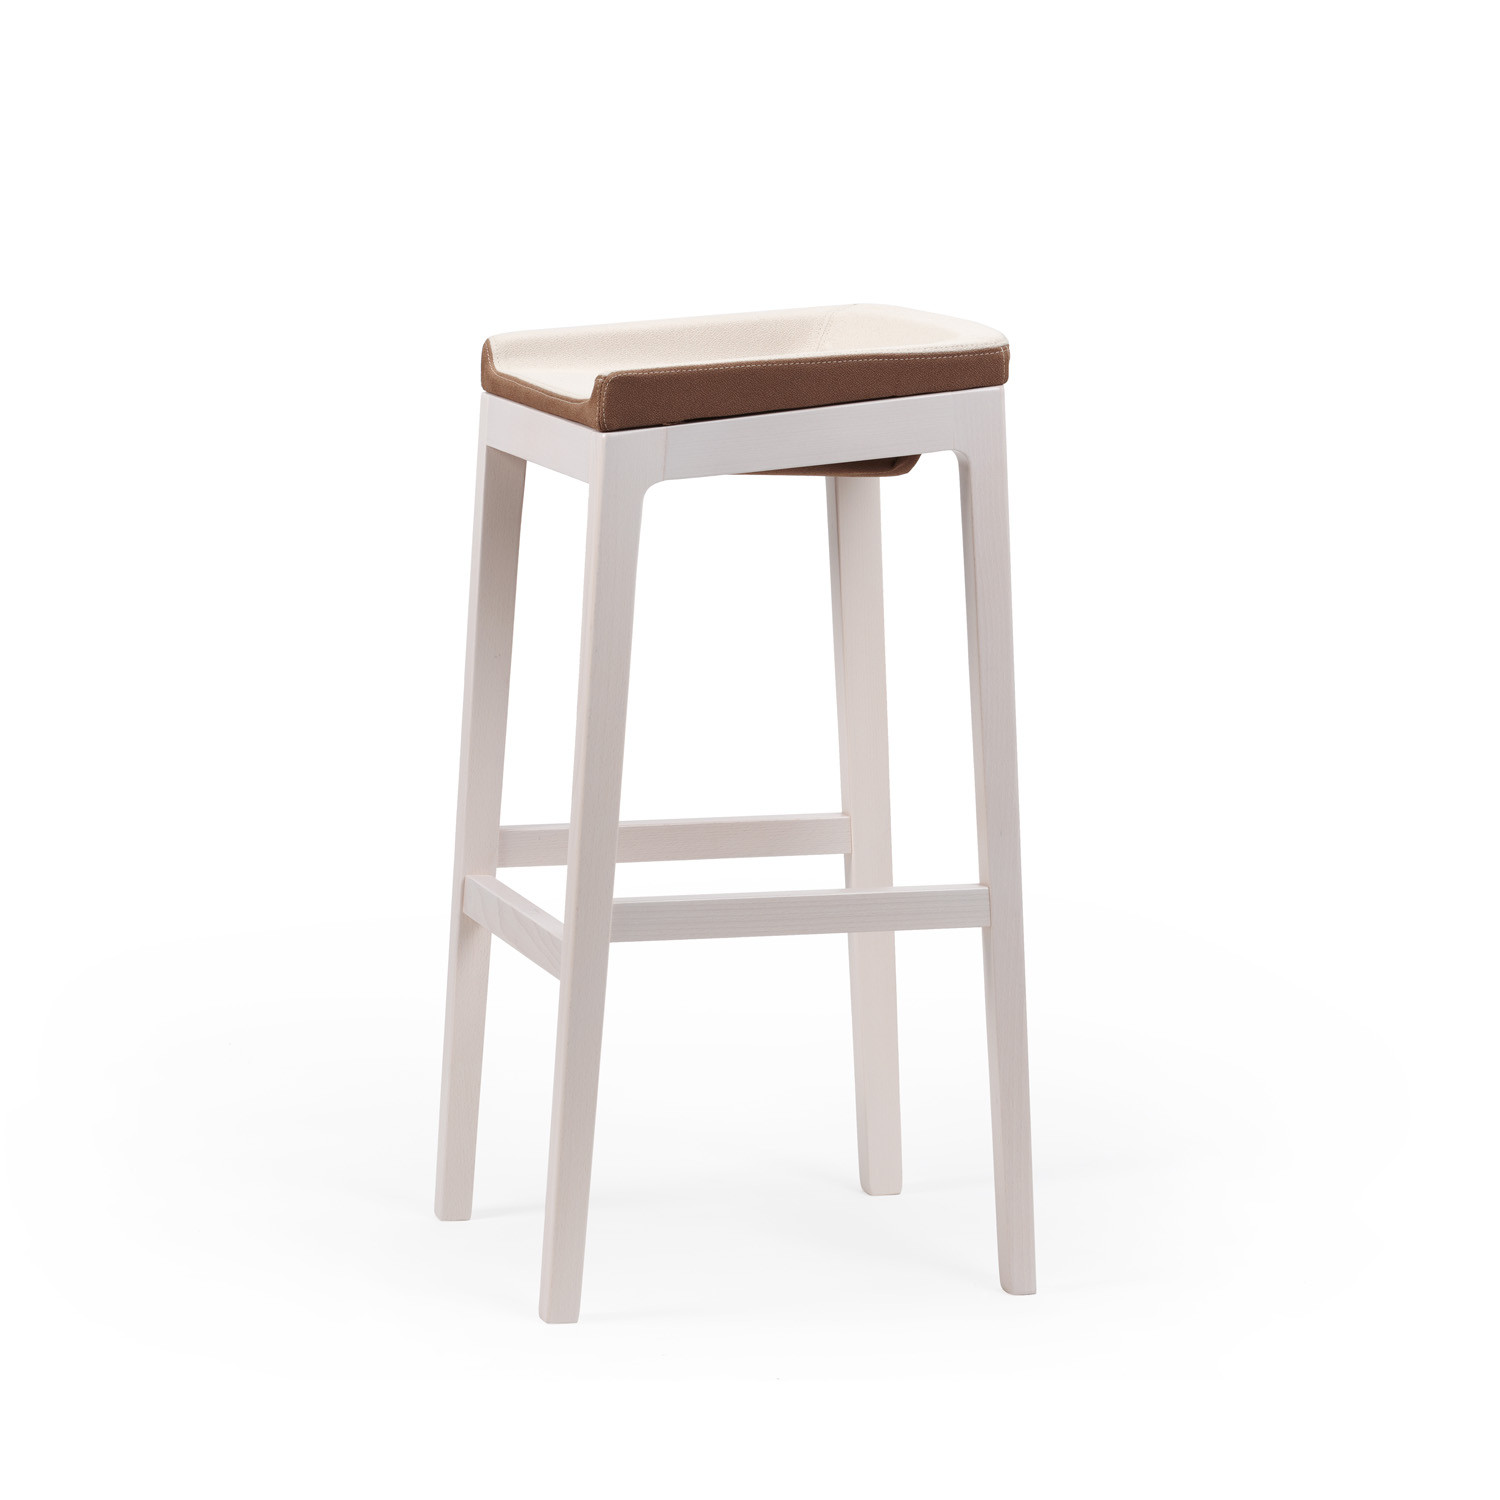 Tonic Bar Stool Wooden by Rossin